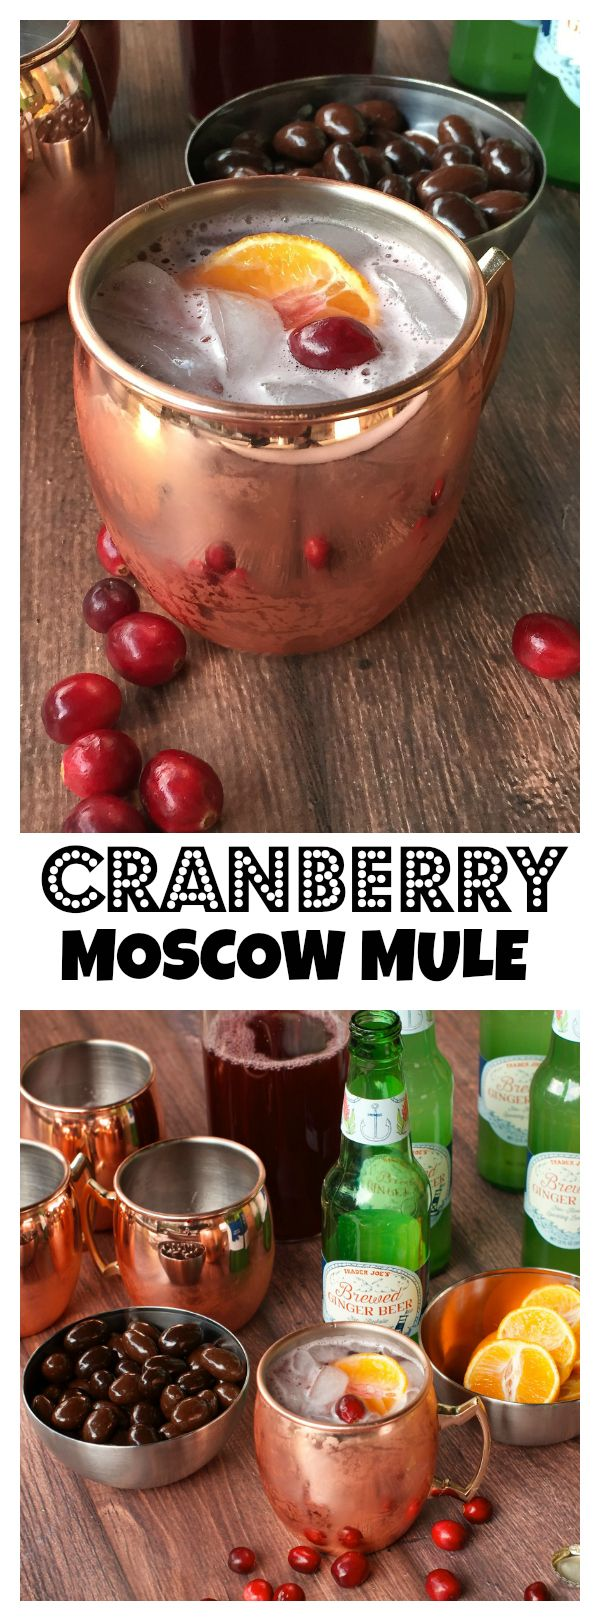 17 best ideas about mule drink on pinterest moscow mule recipe moscow mule drink and cocktail. Black Bedroom Furniture Sets. Home Design Ideas